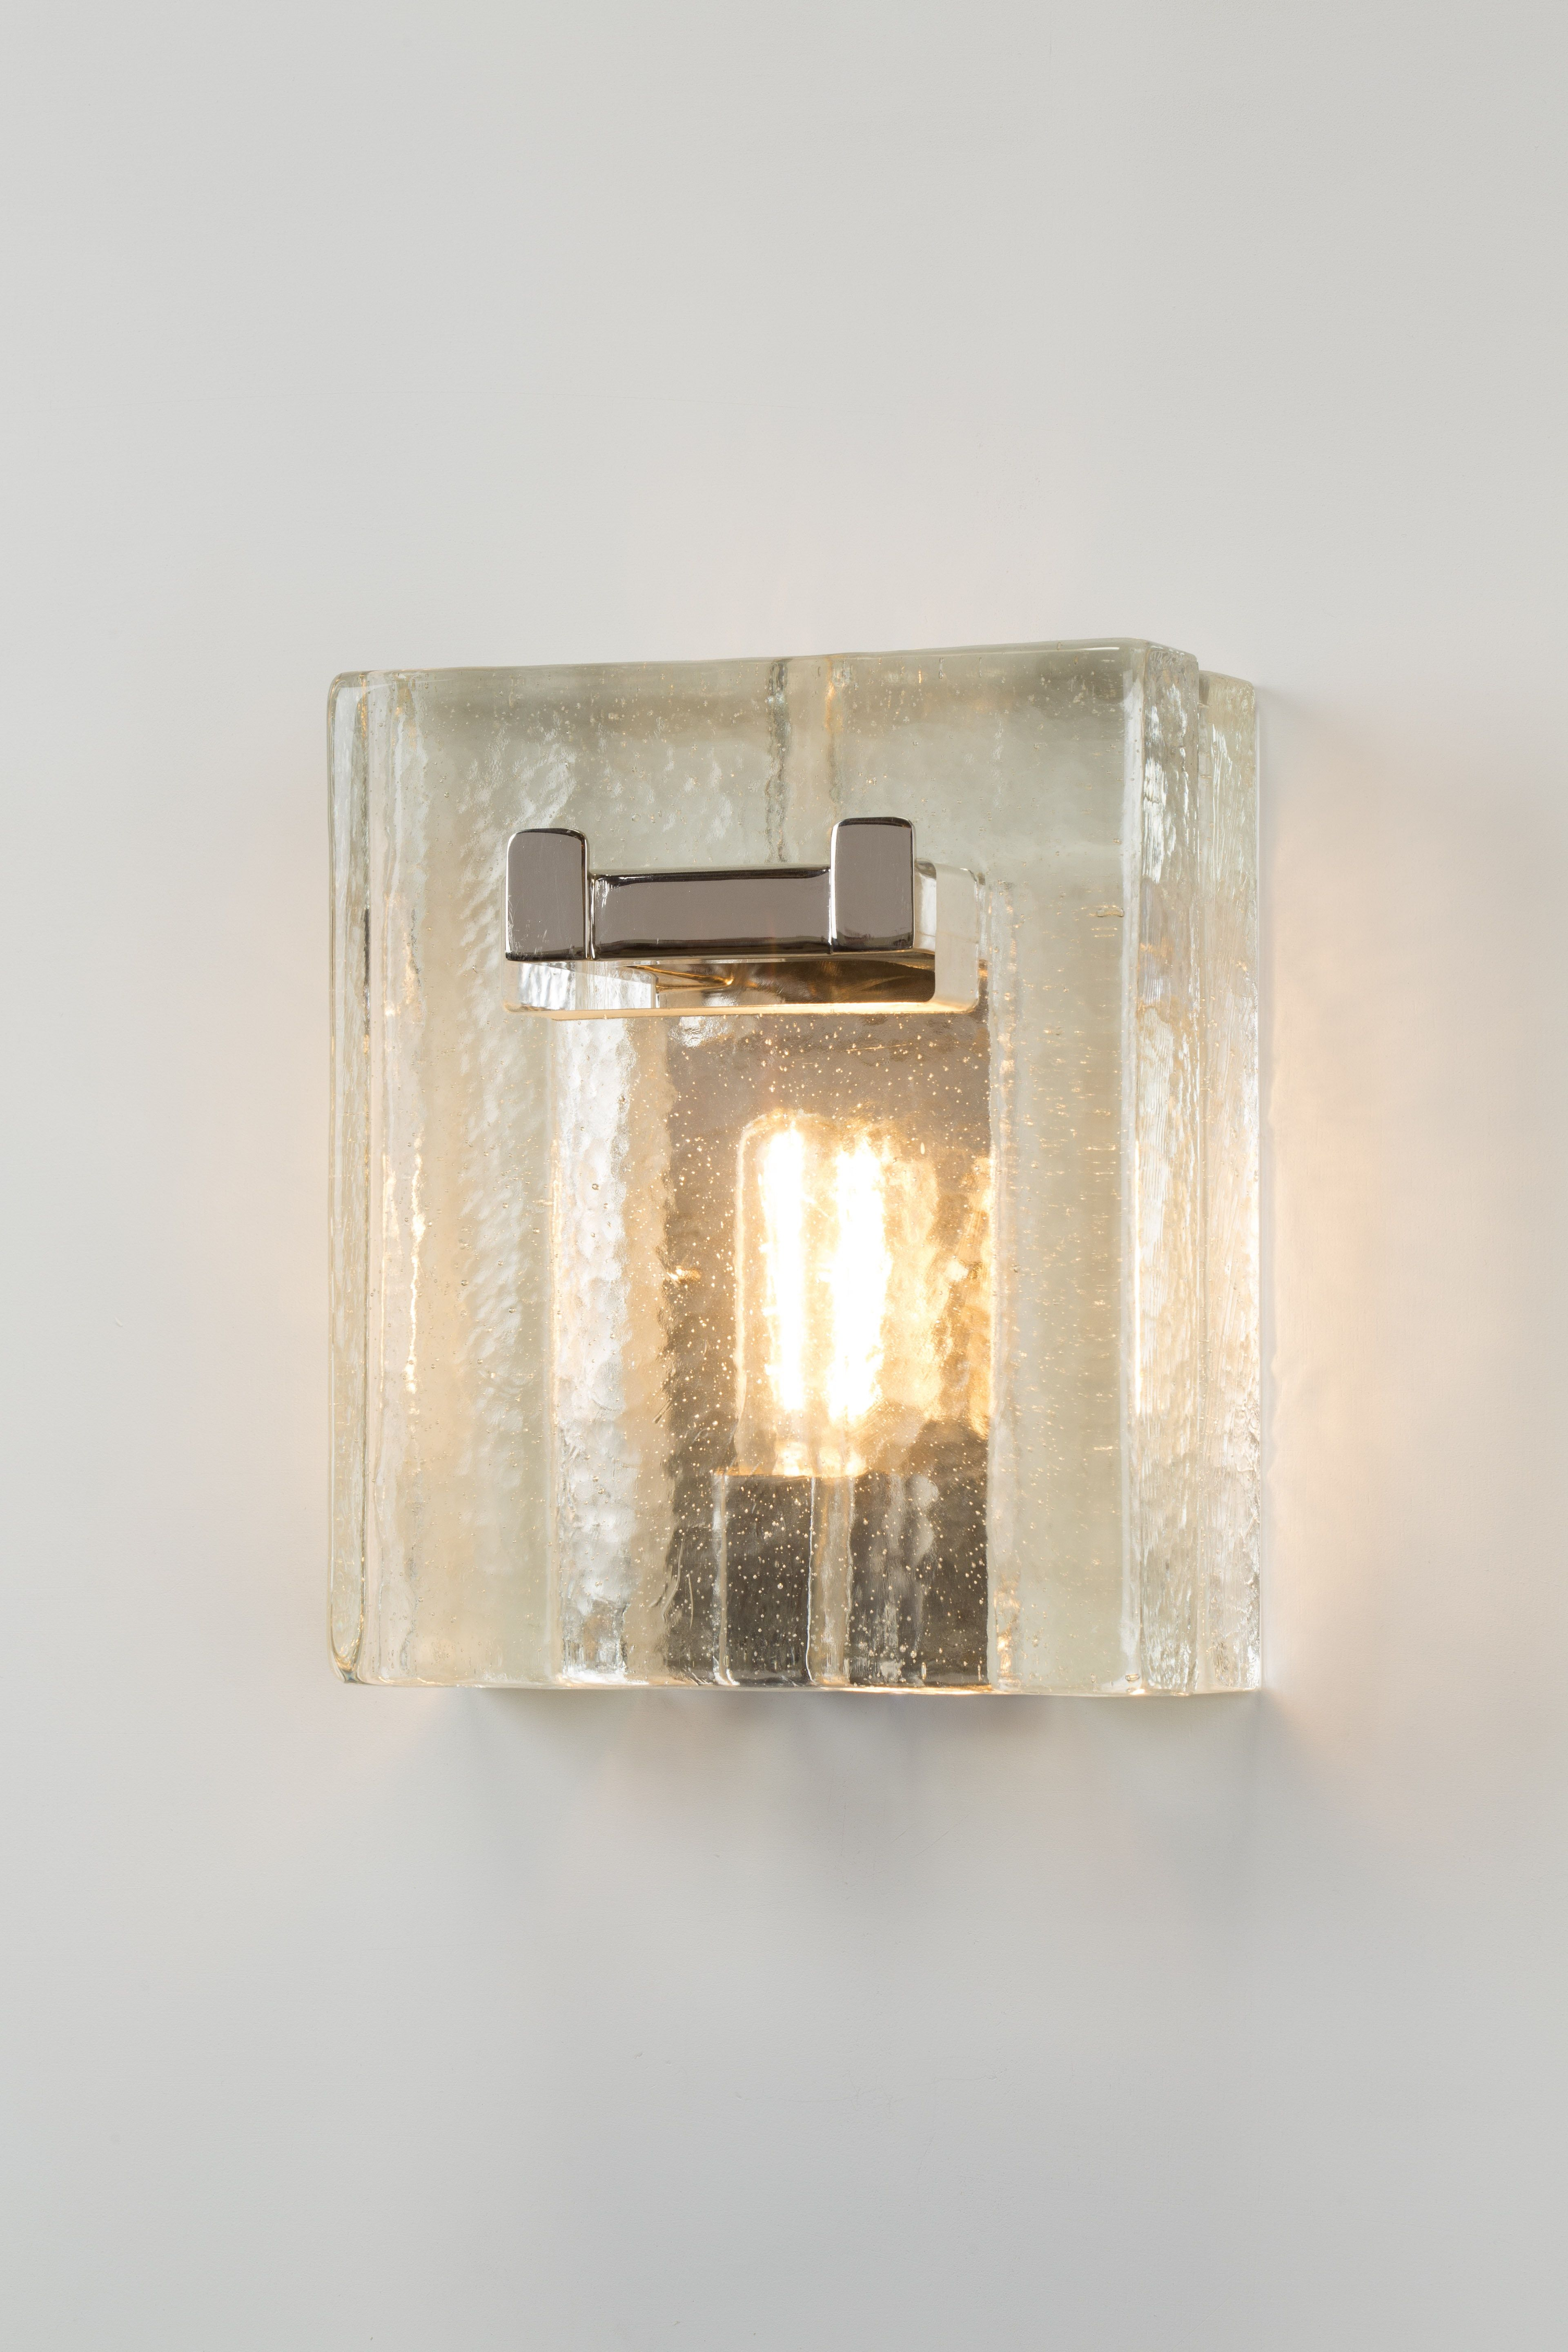 Mon Coeur Wall Sconce By Thomas Cooper Studio Sconces Sconce Lamp Wall Sconces